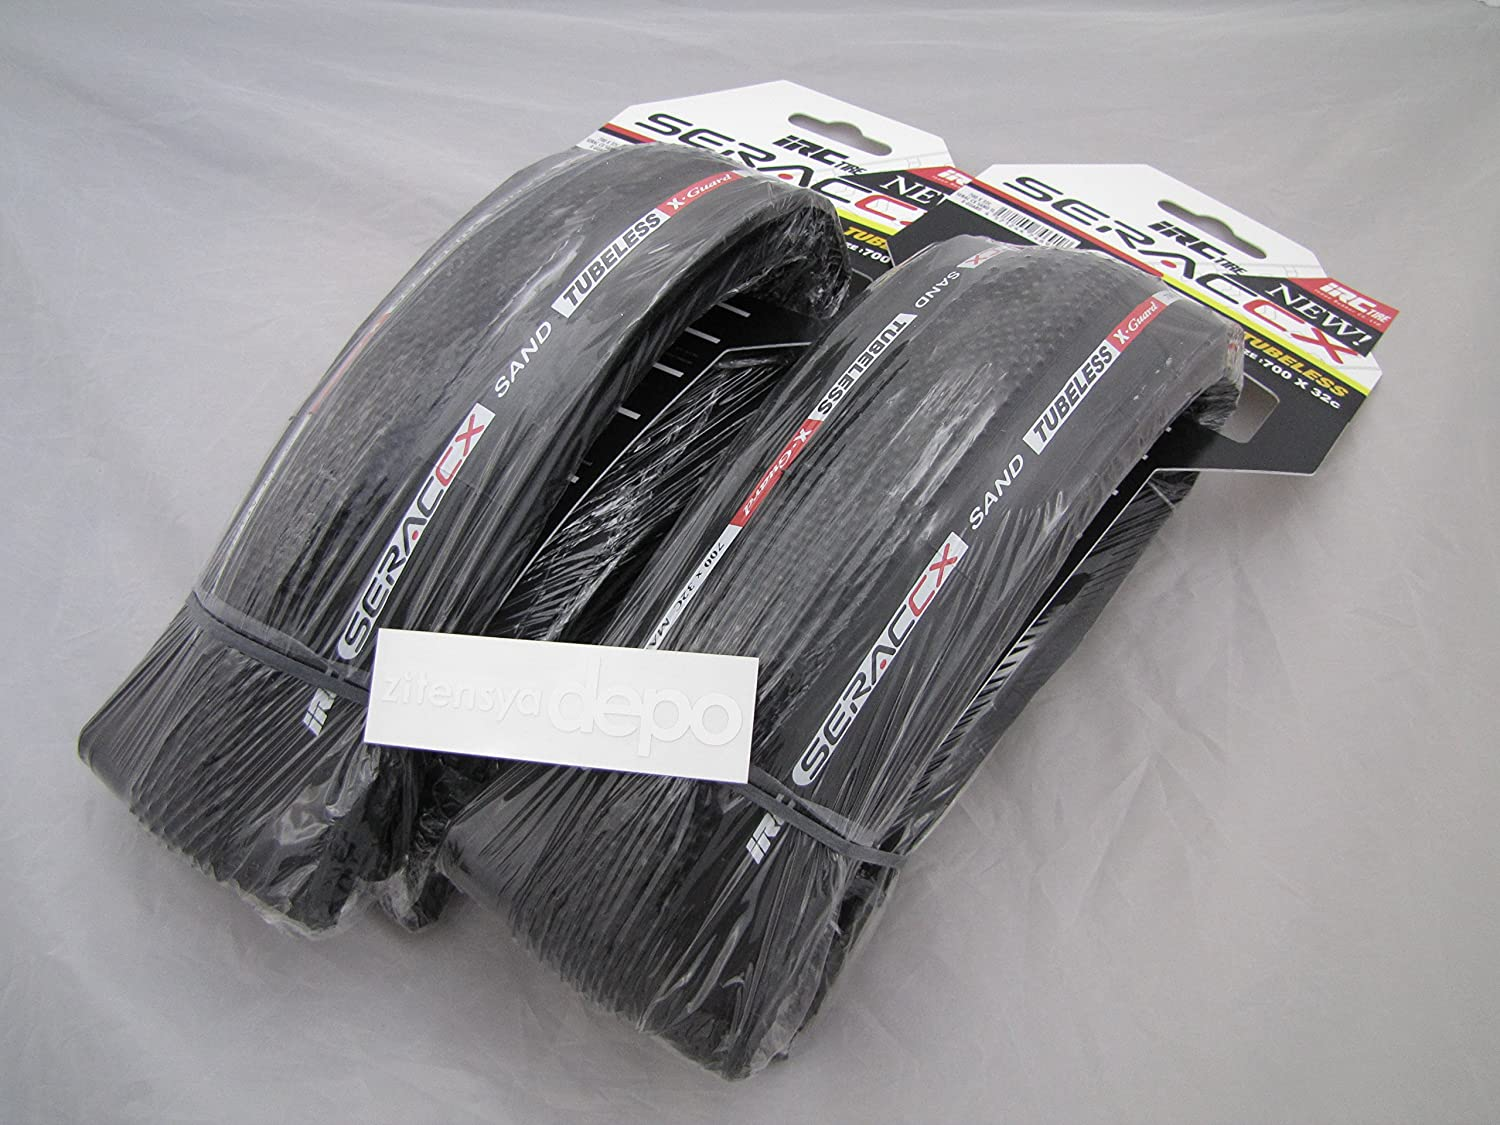 IRCアイアールシー SERAC CX TUBELESS SAND X-GUARD 700×32C タイヤ×2 +zitensyadepoステッカー B01N527DP3